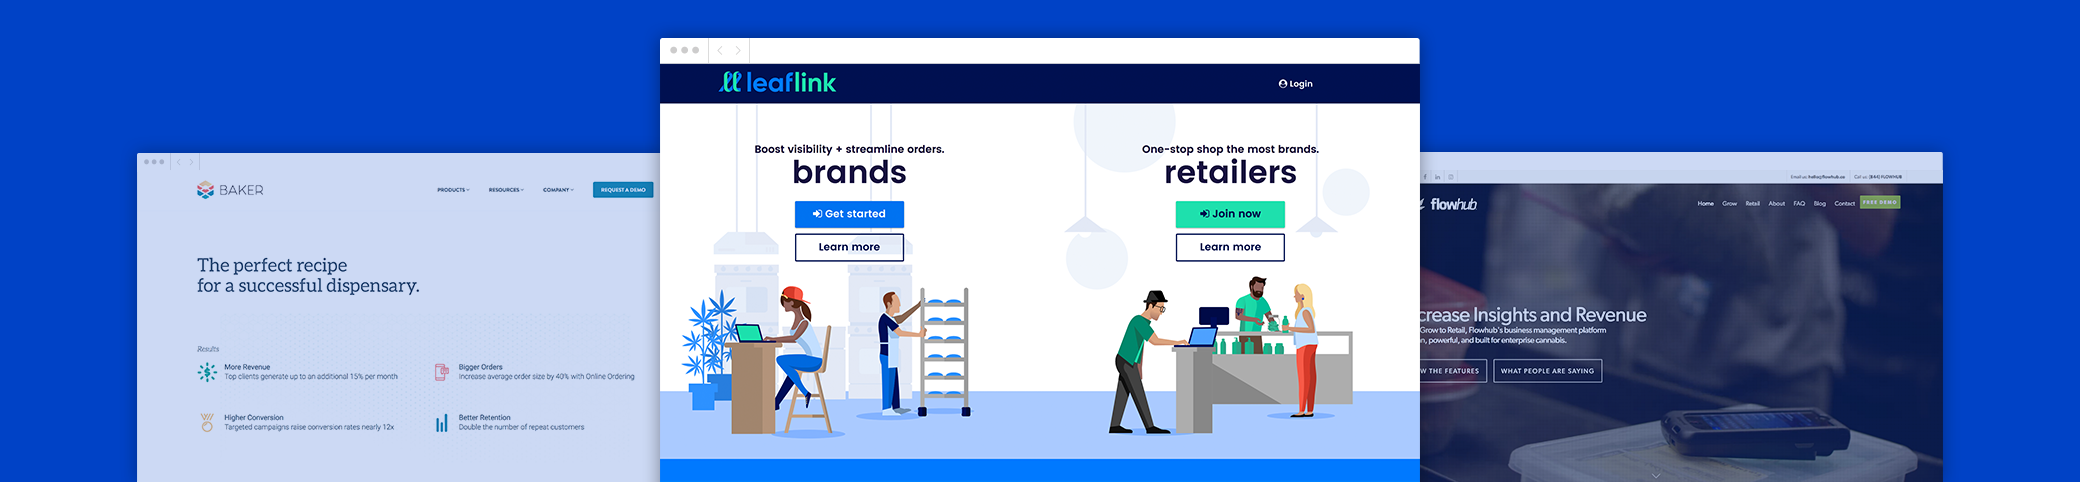 LeafLink with competitors FlowHub and Baker